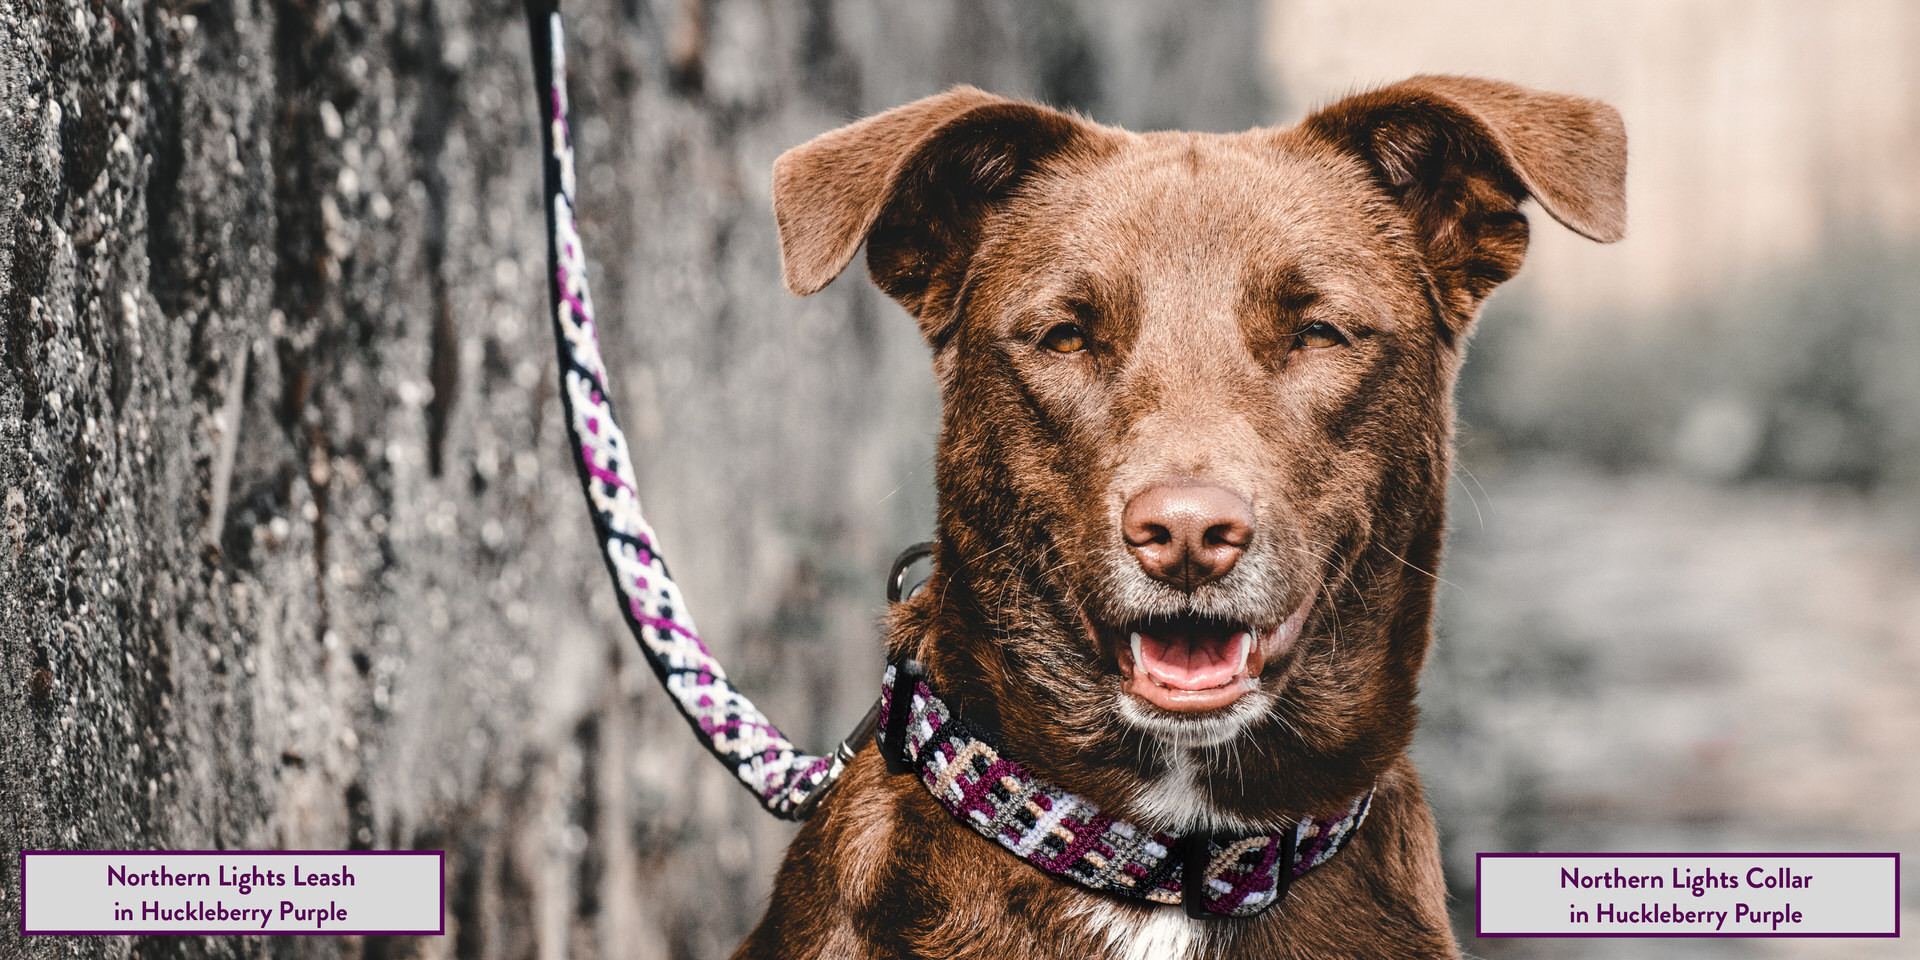 RUFFLY Lookbook – Pages 6 and 7 – Northern Lights Collar and Leash in Huckleberry Purple